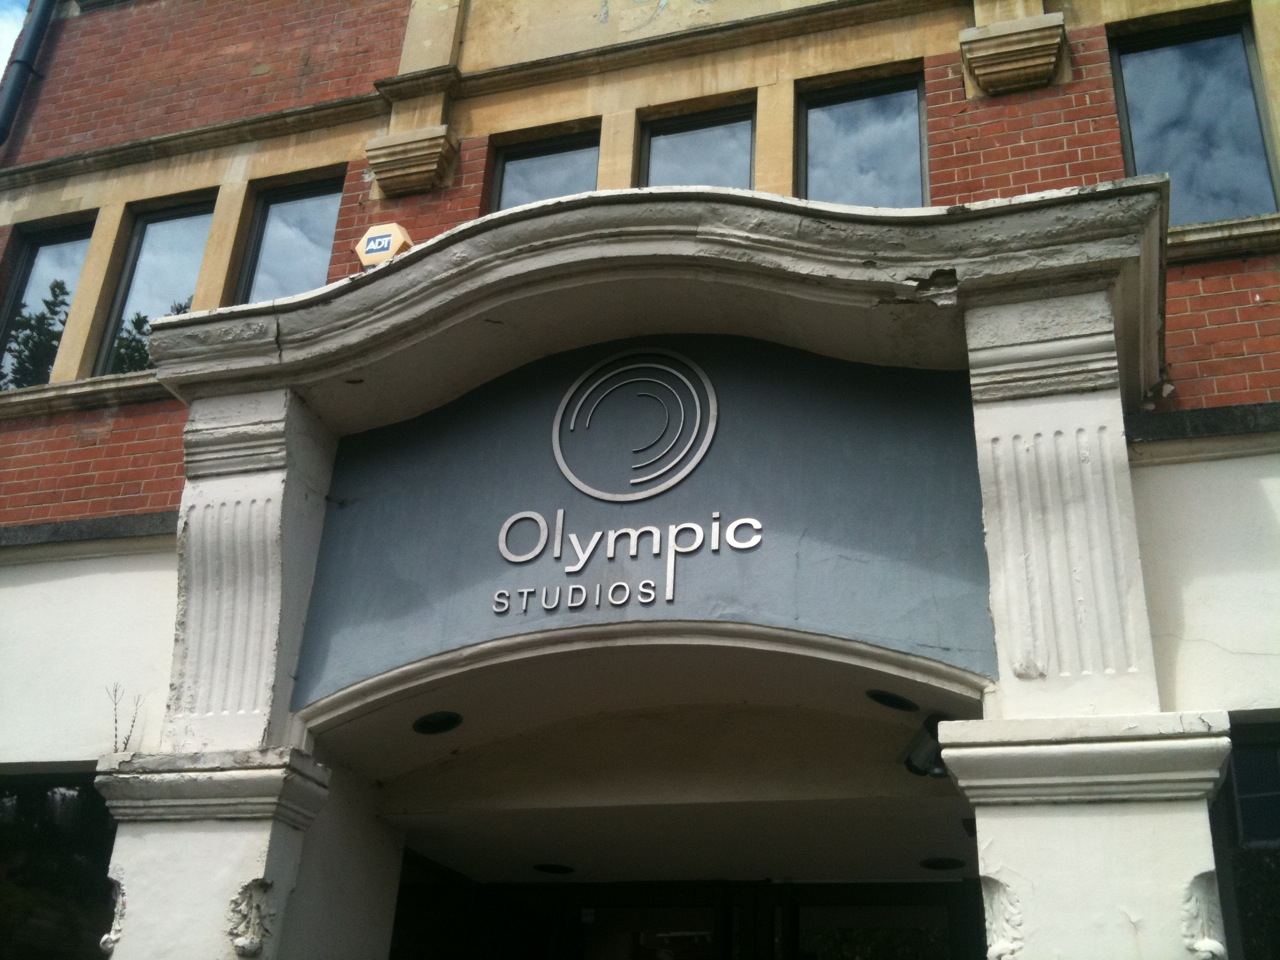 Barnflakes: The Olympic Cinema in Barnes